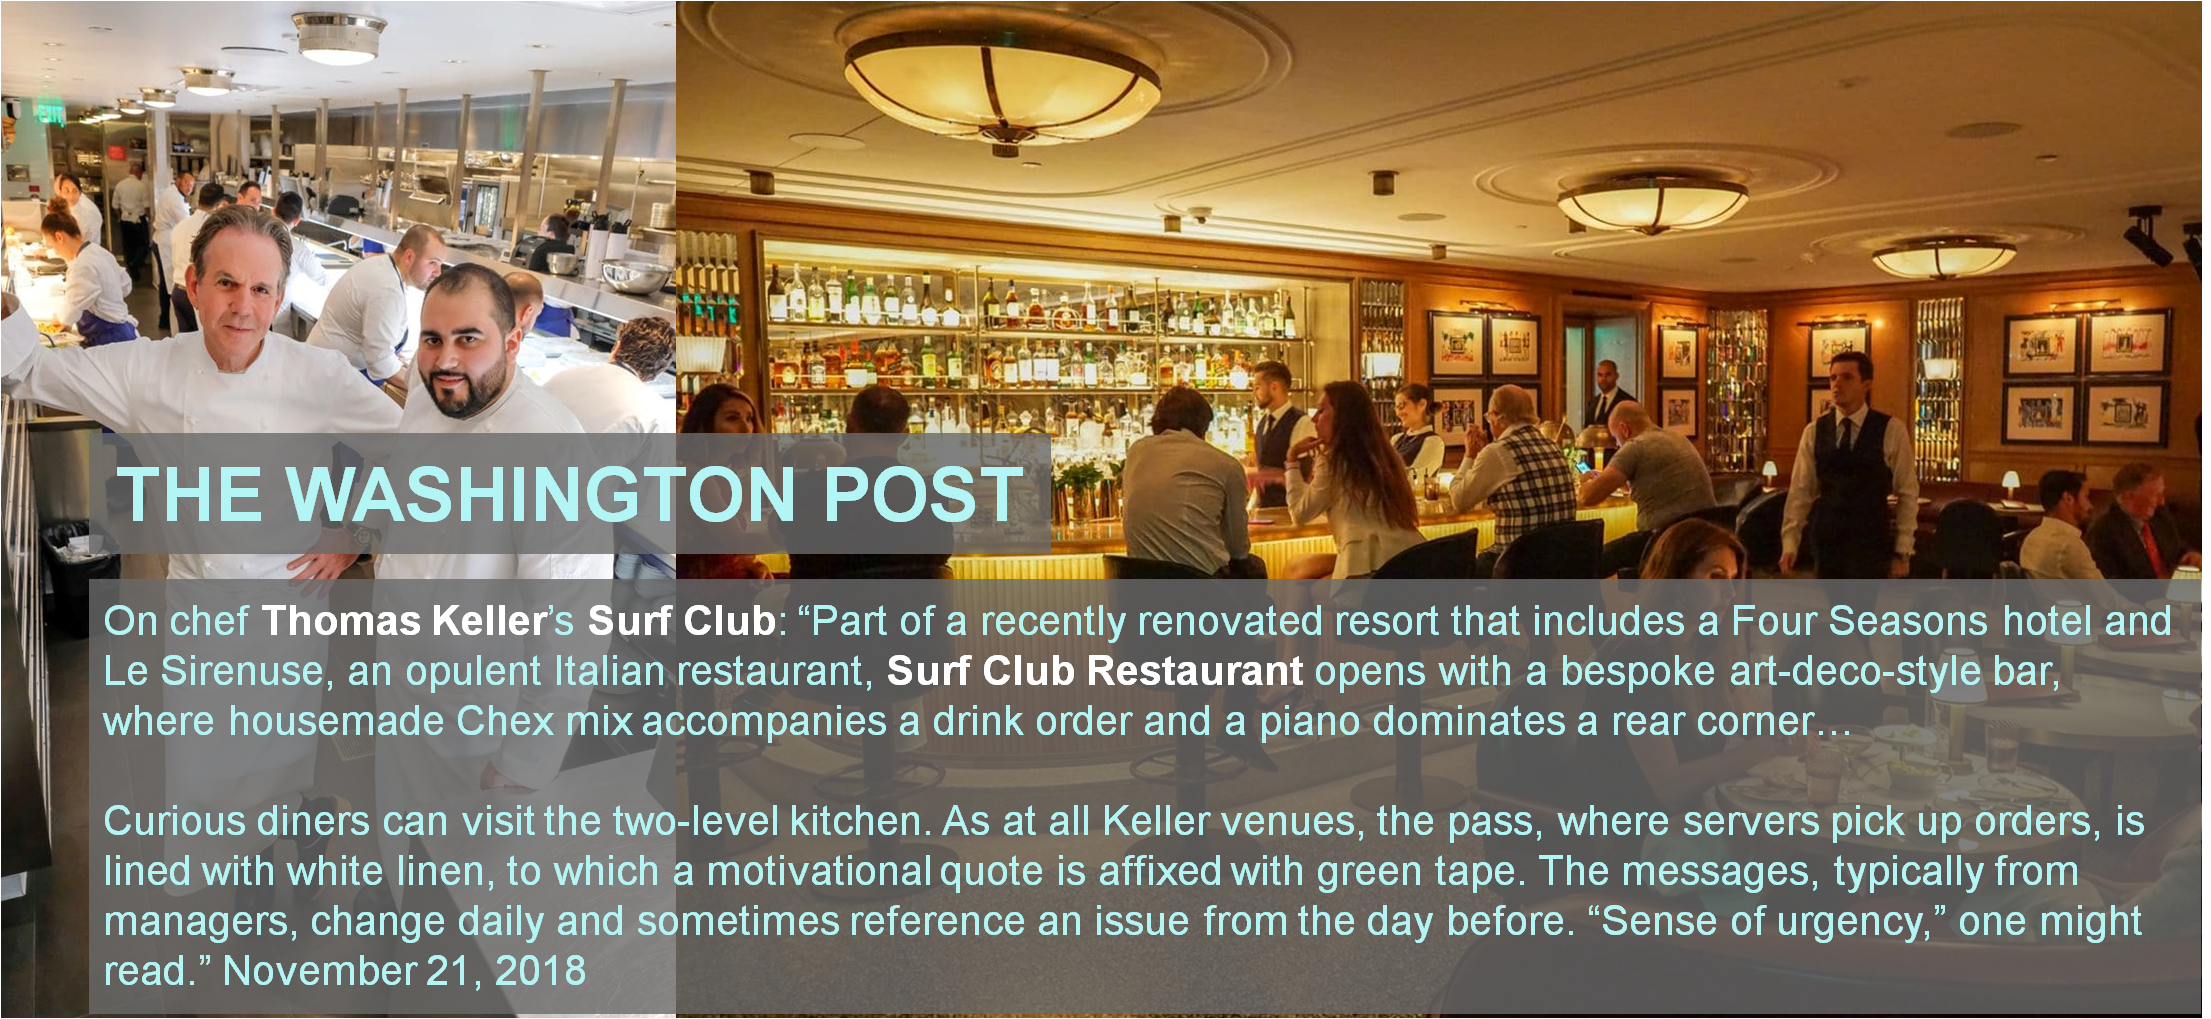 Washington Post November 21 2018 Surf Club.png